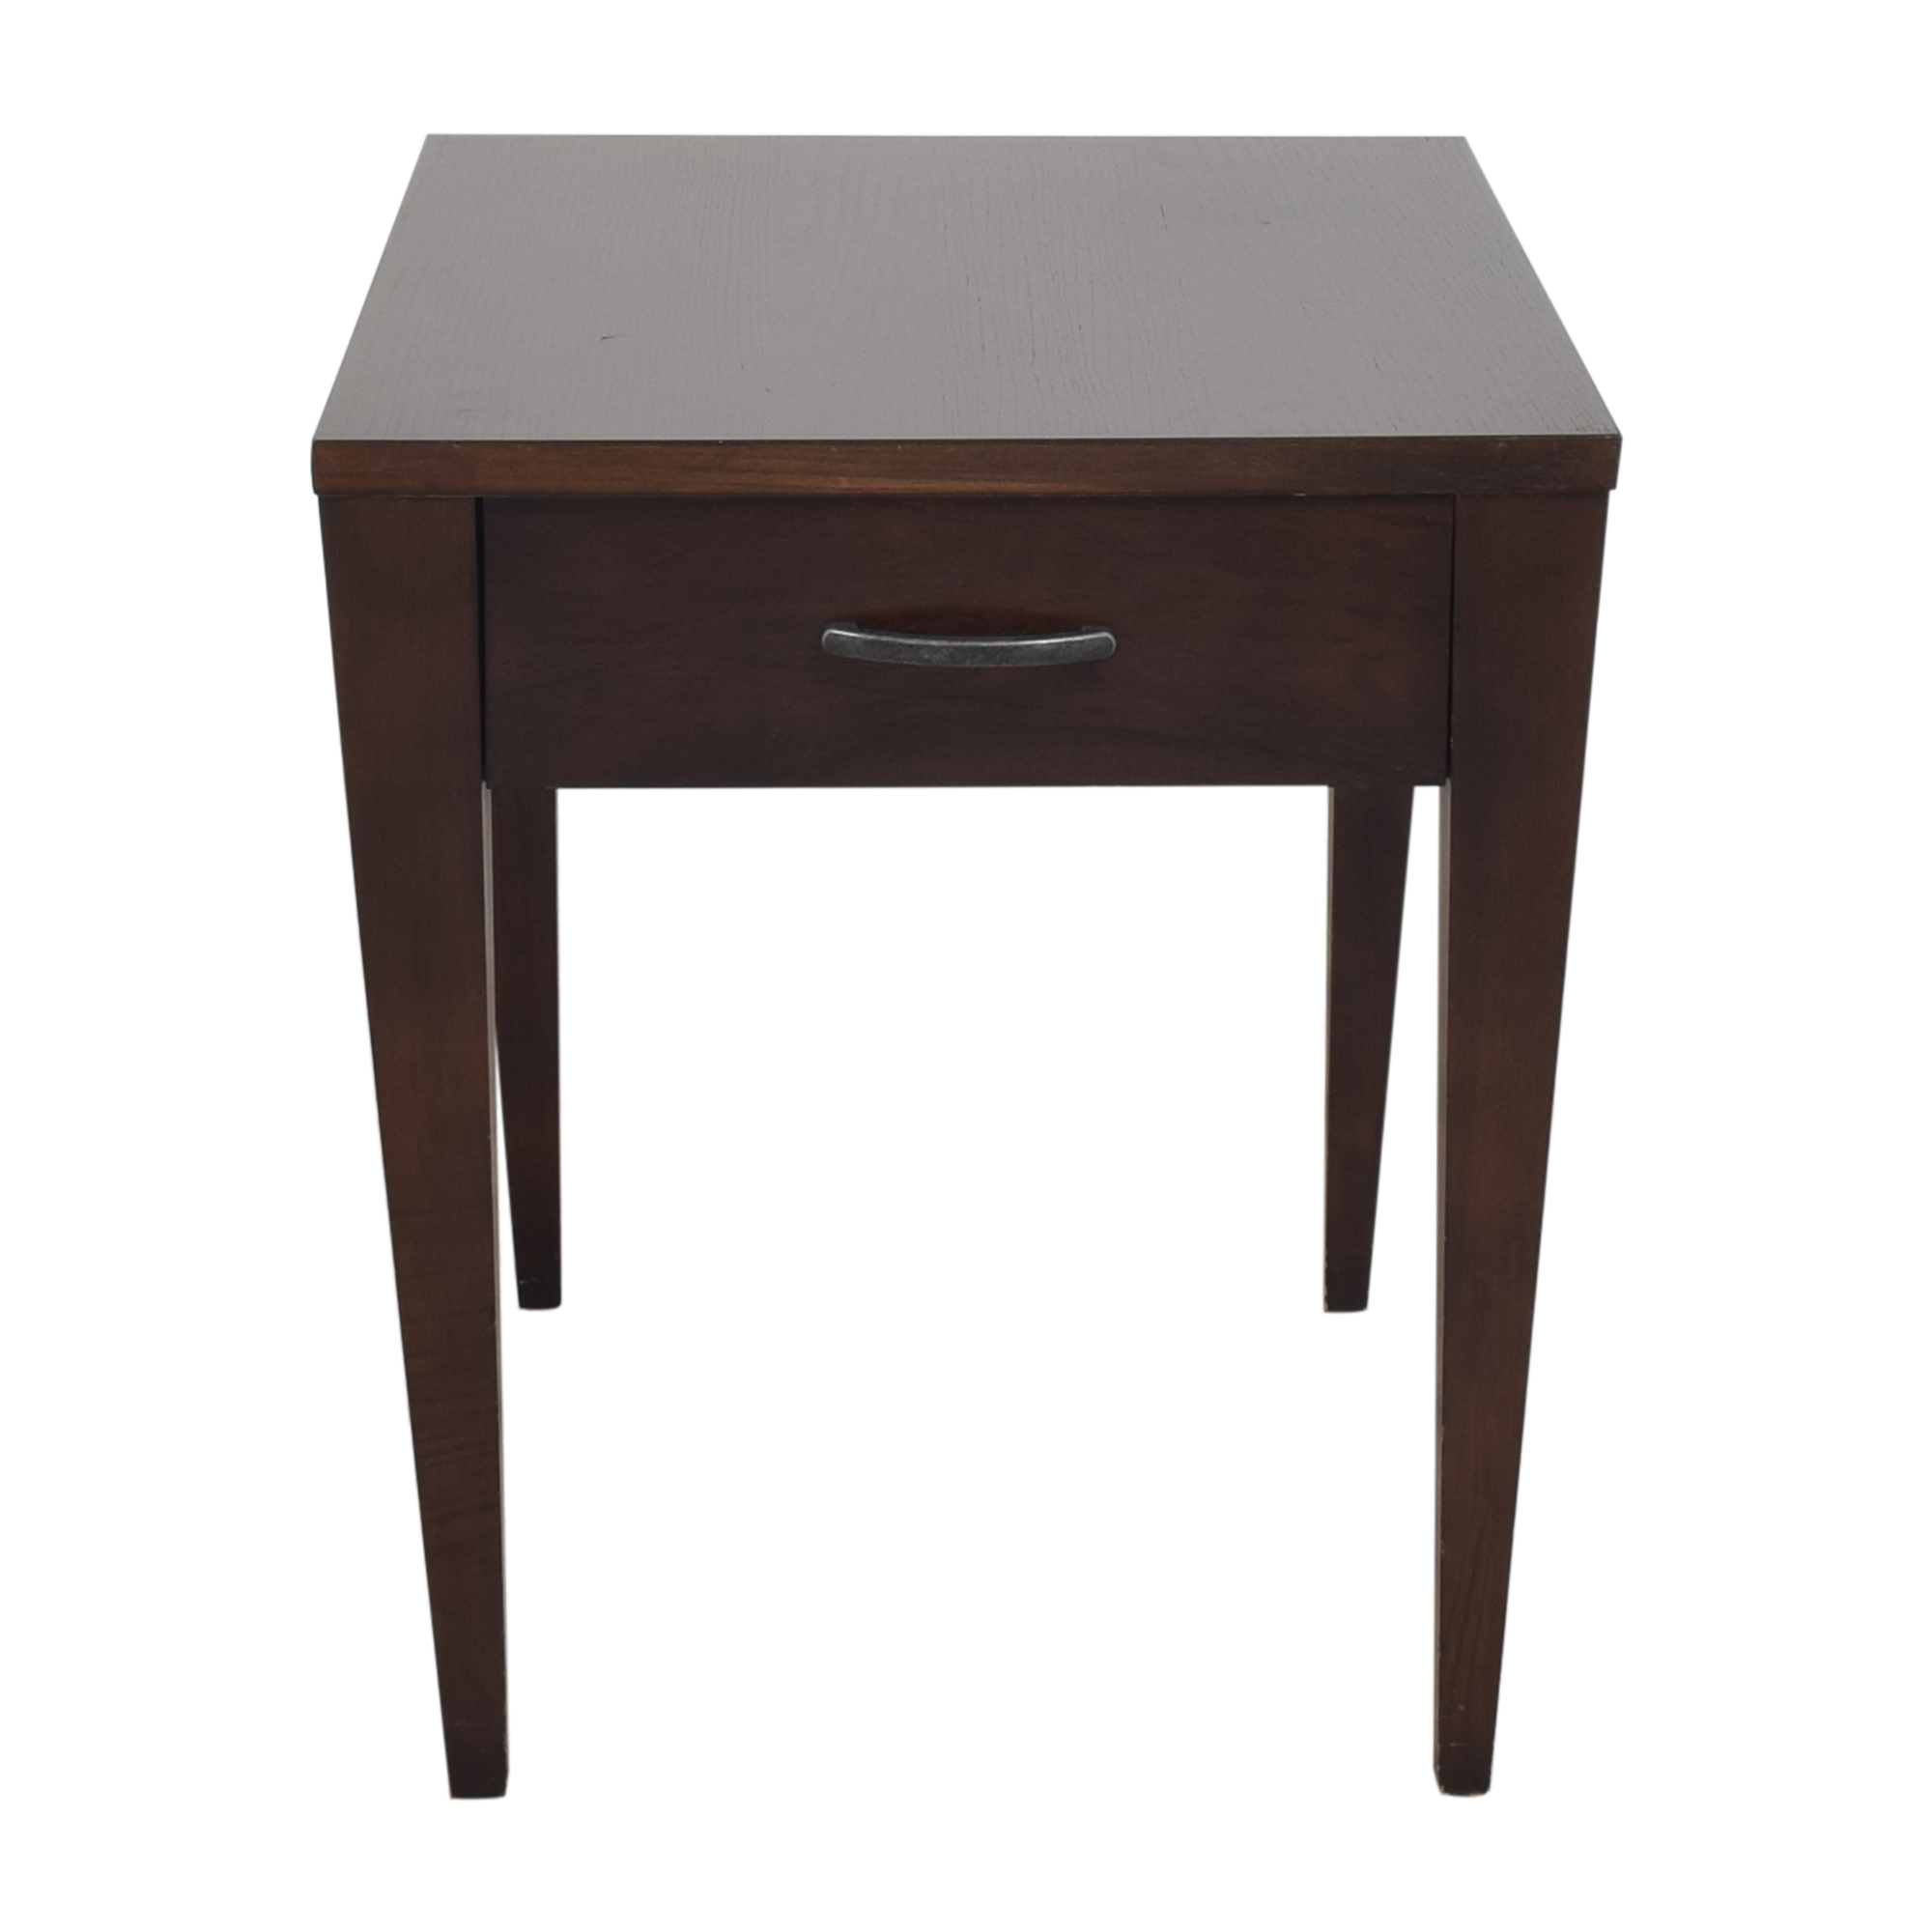 Ethan Allen Ethan Allen Horizons End Table pa